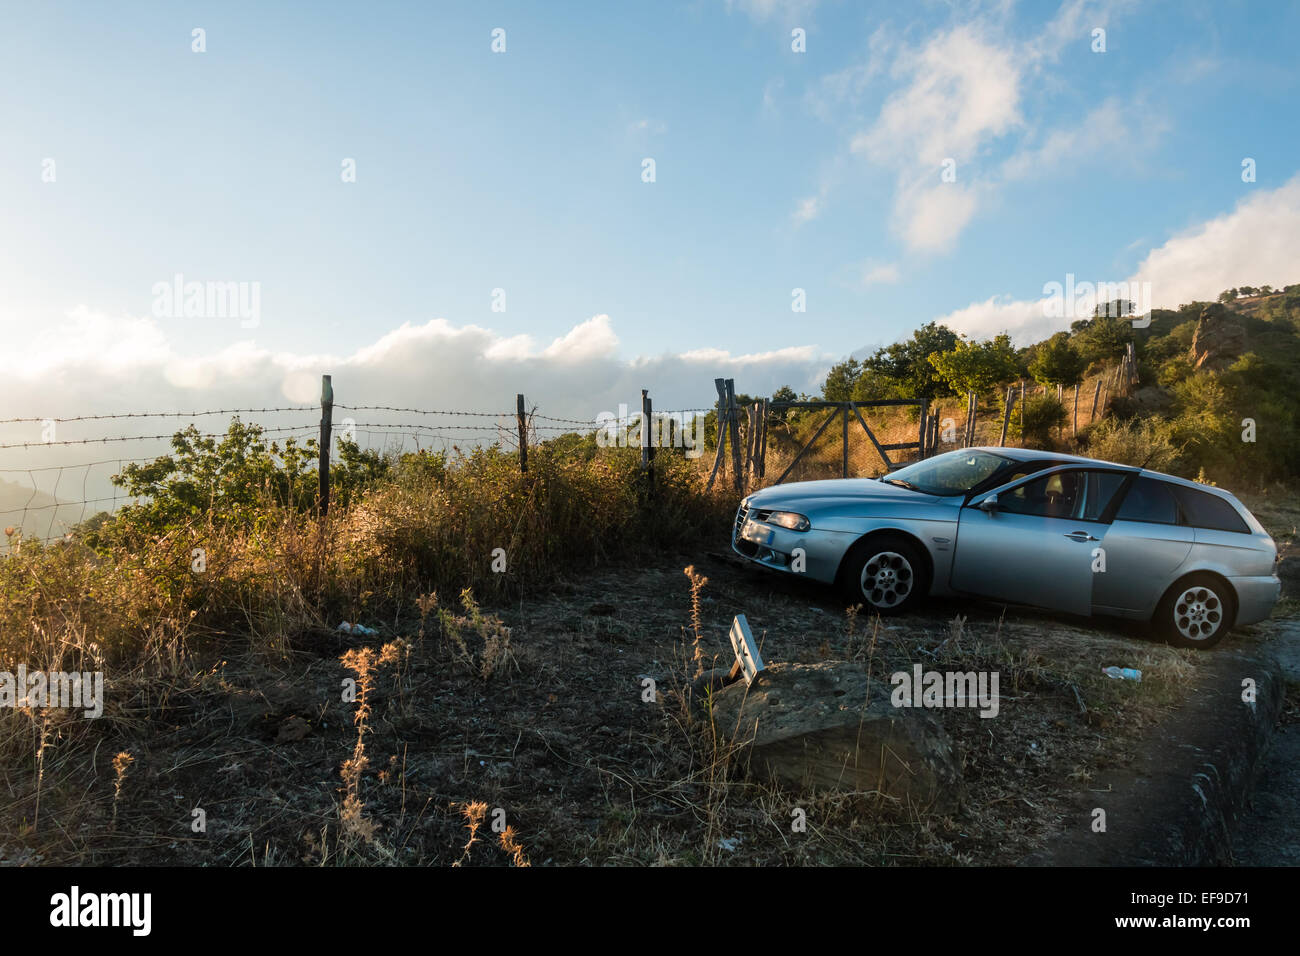 Abandoned car in the corner of the street - Stock Image